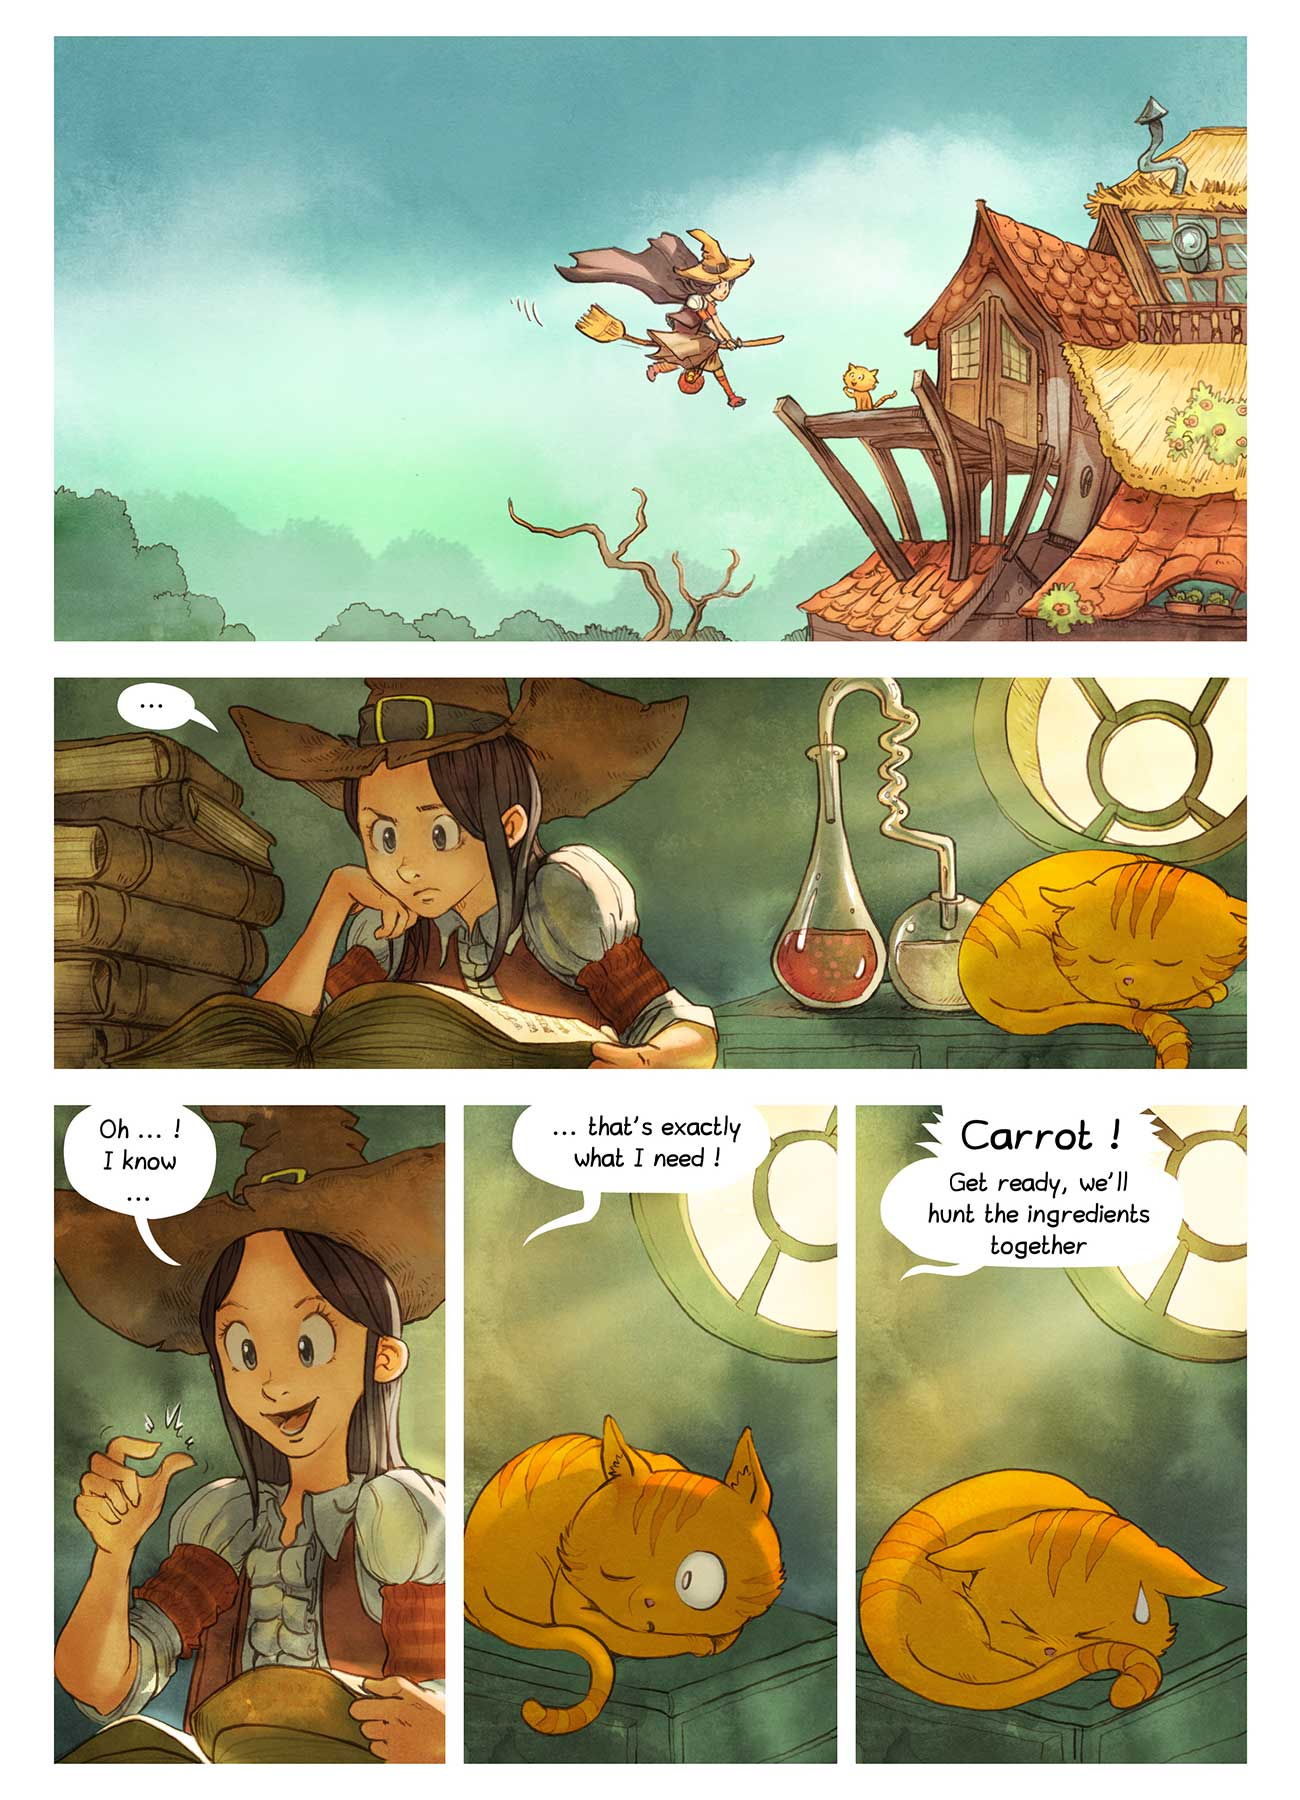 Pepper and Carrot free childrens comic page 4